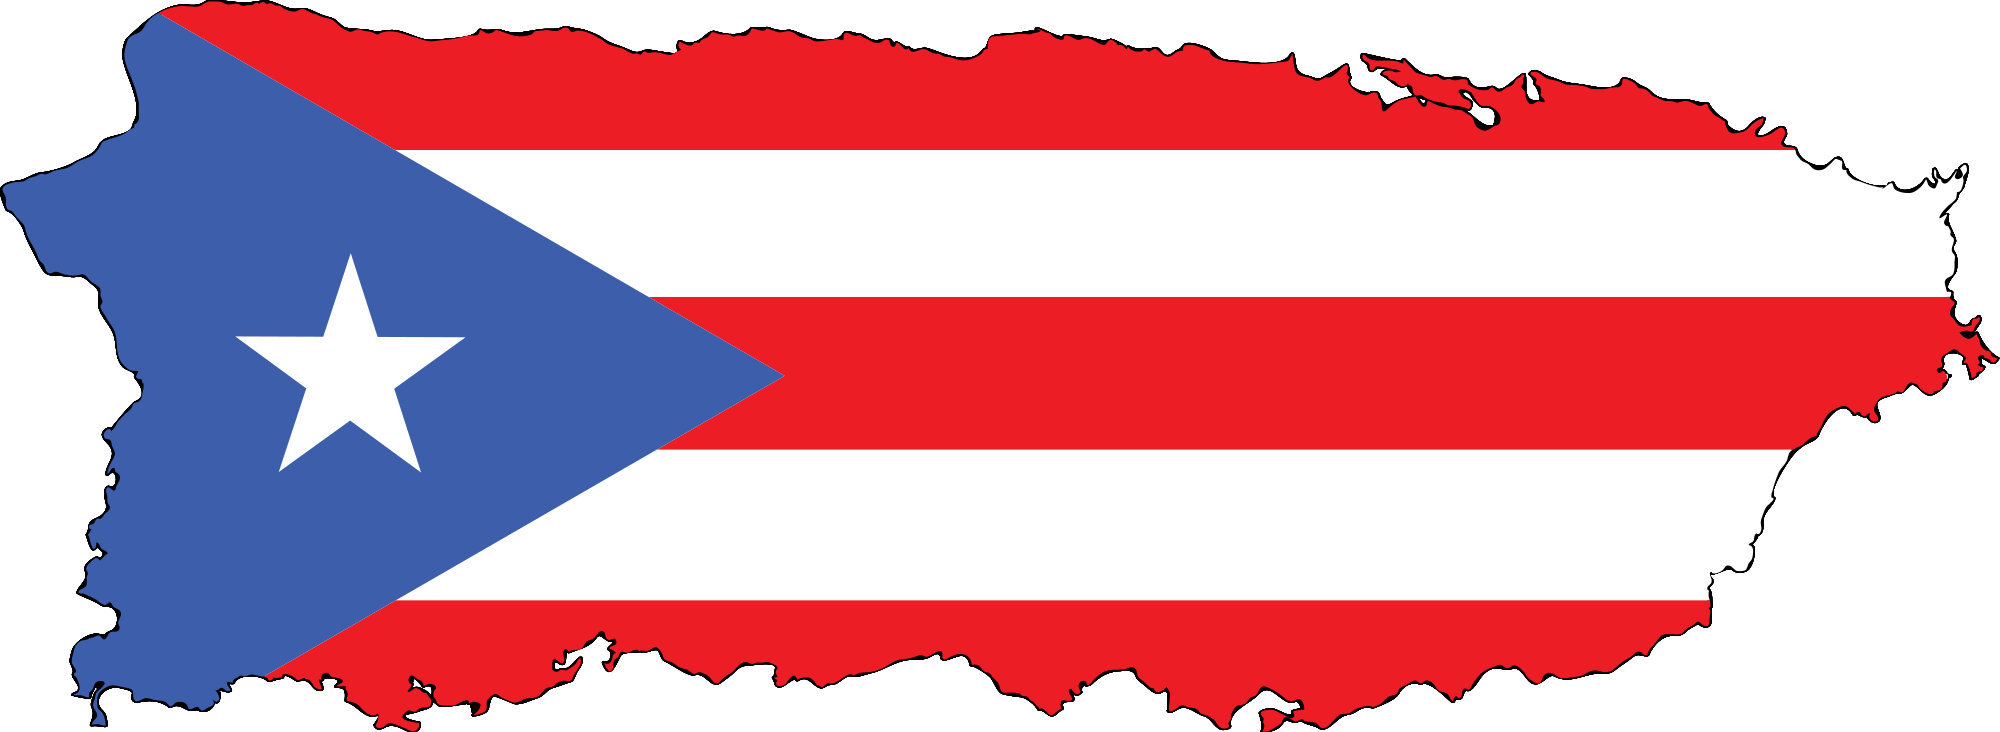 Puerto rico map png. File pr flag island